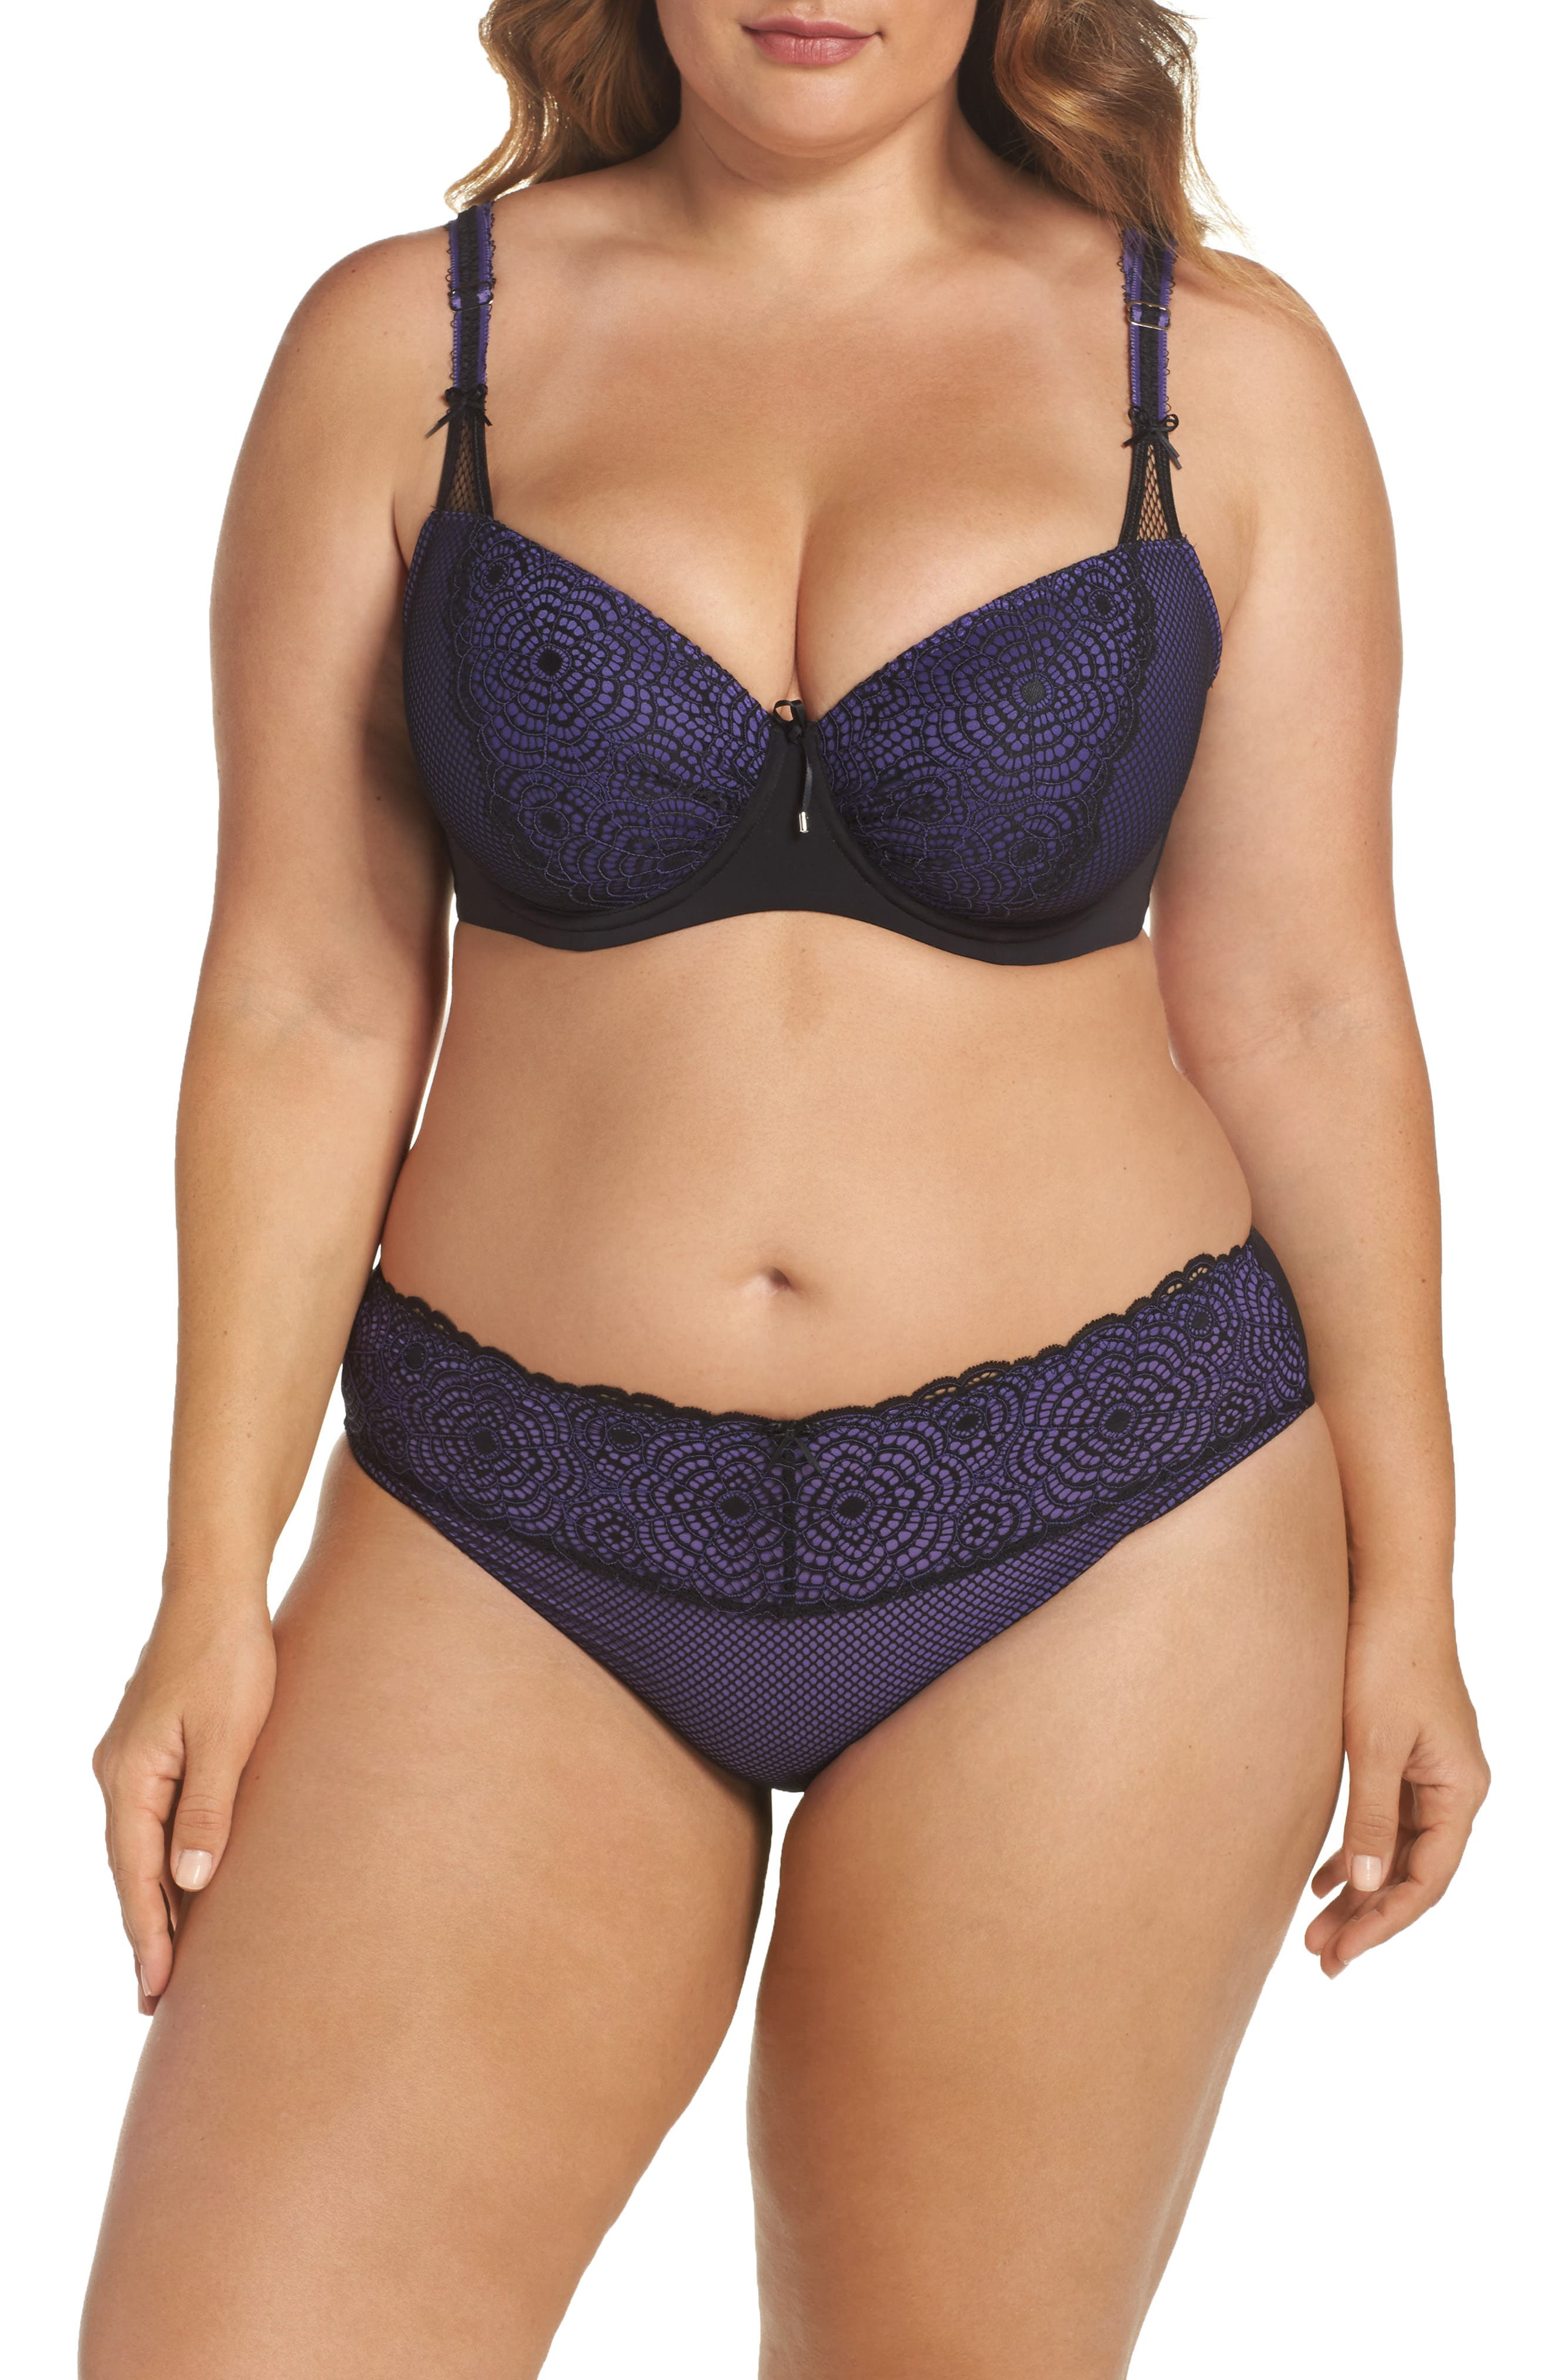 Ashley Graham Bra & Panties (Plus Size)